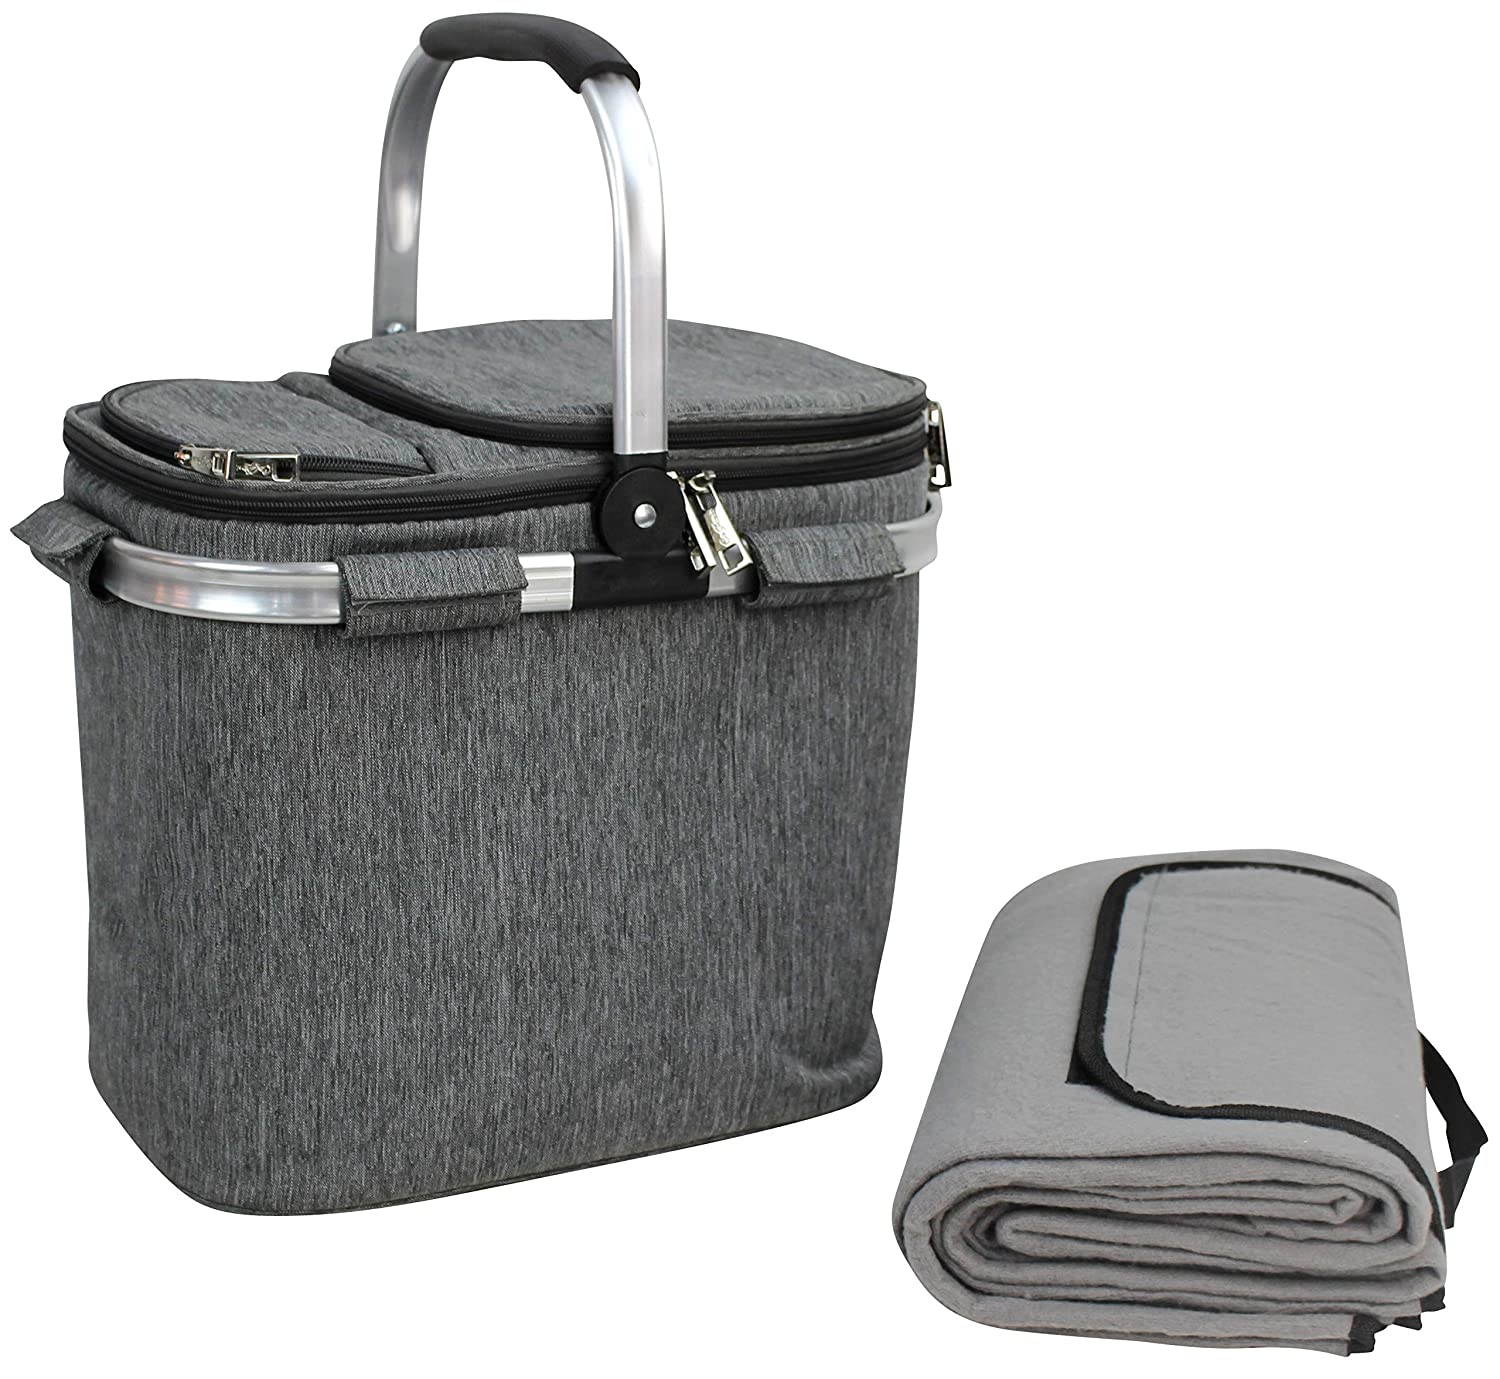 Picnic Basket Beautiful Design Insulated Tote Bag Kit Insulated Lunch Tote for Women /& Men Picnic Heavy Duty Aluminum Frame and Handle Collapsible Cooler Keeps Drinks Cool Wine Picnic Set